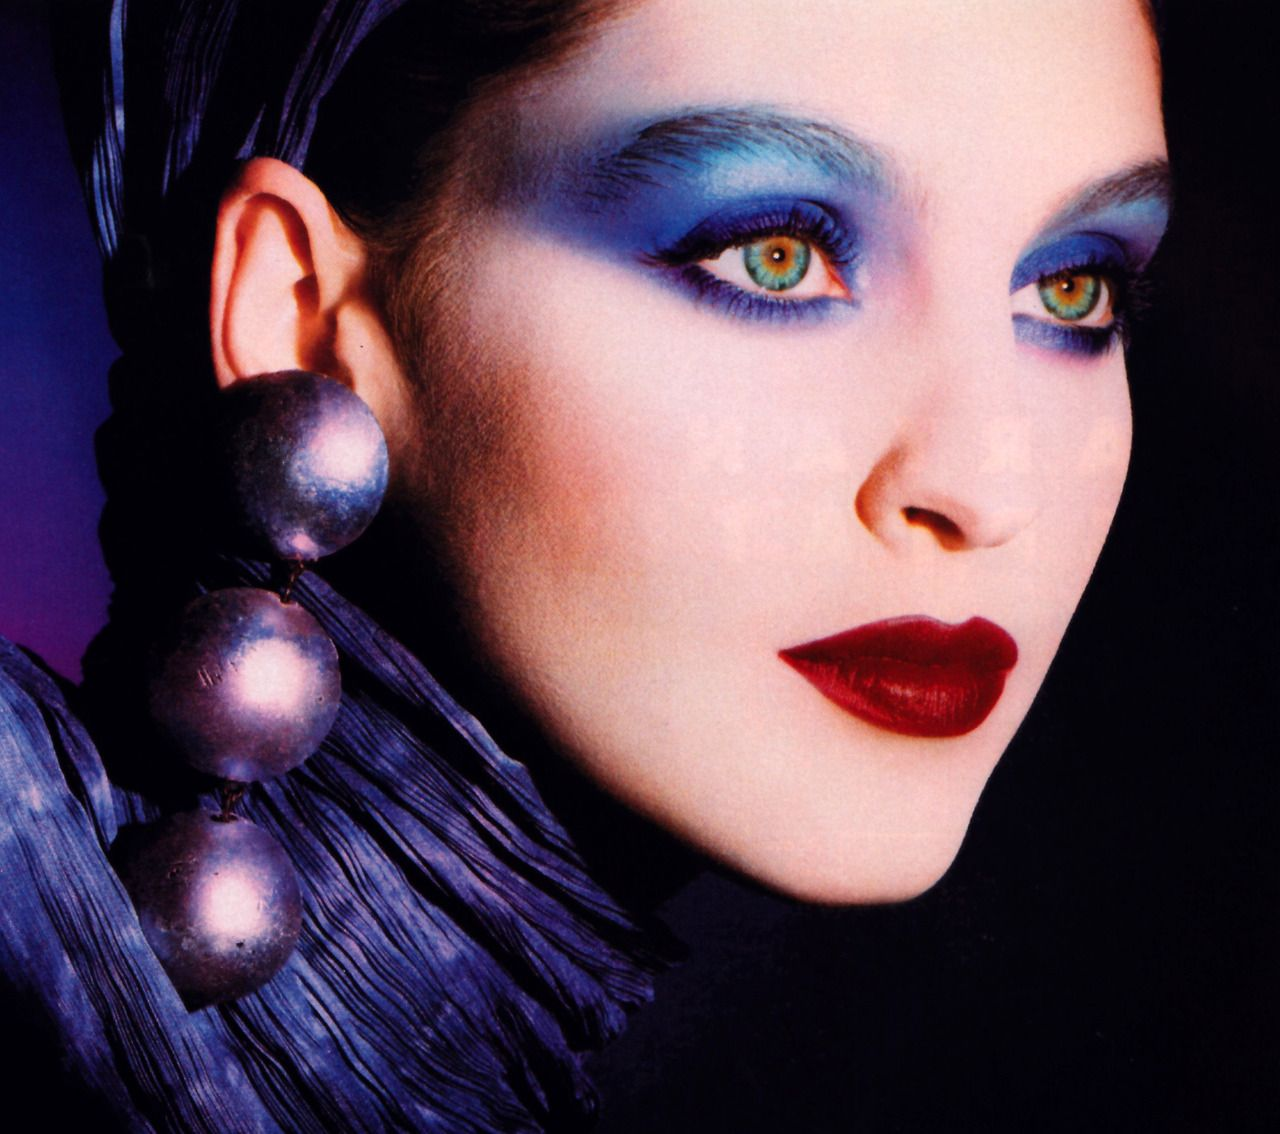 Christian Dior Maquillage, Harper's Bazaar, September 1988. Makeup by Tyen.